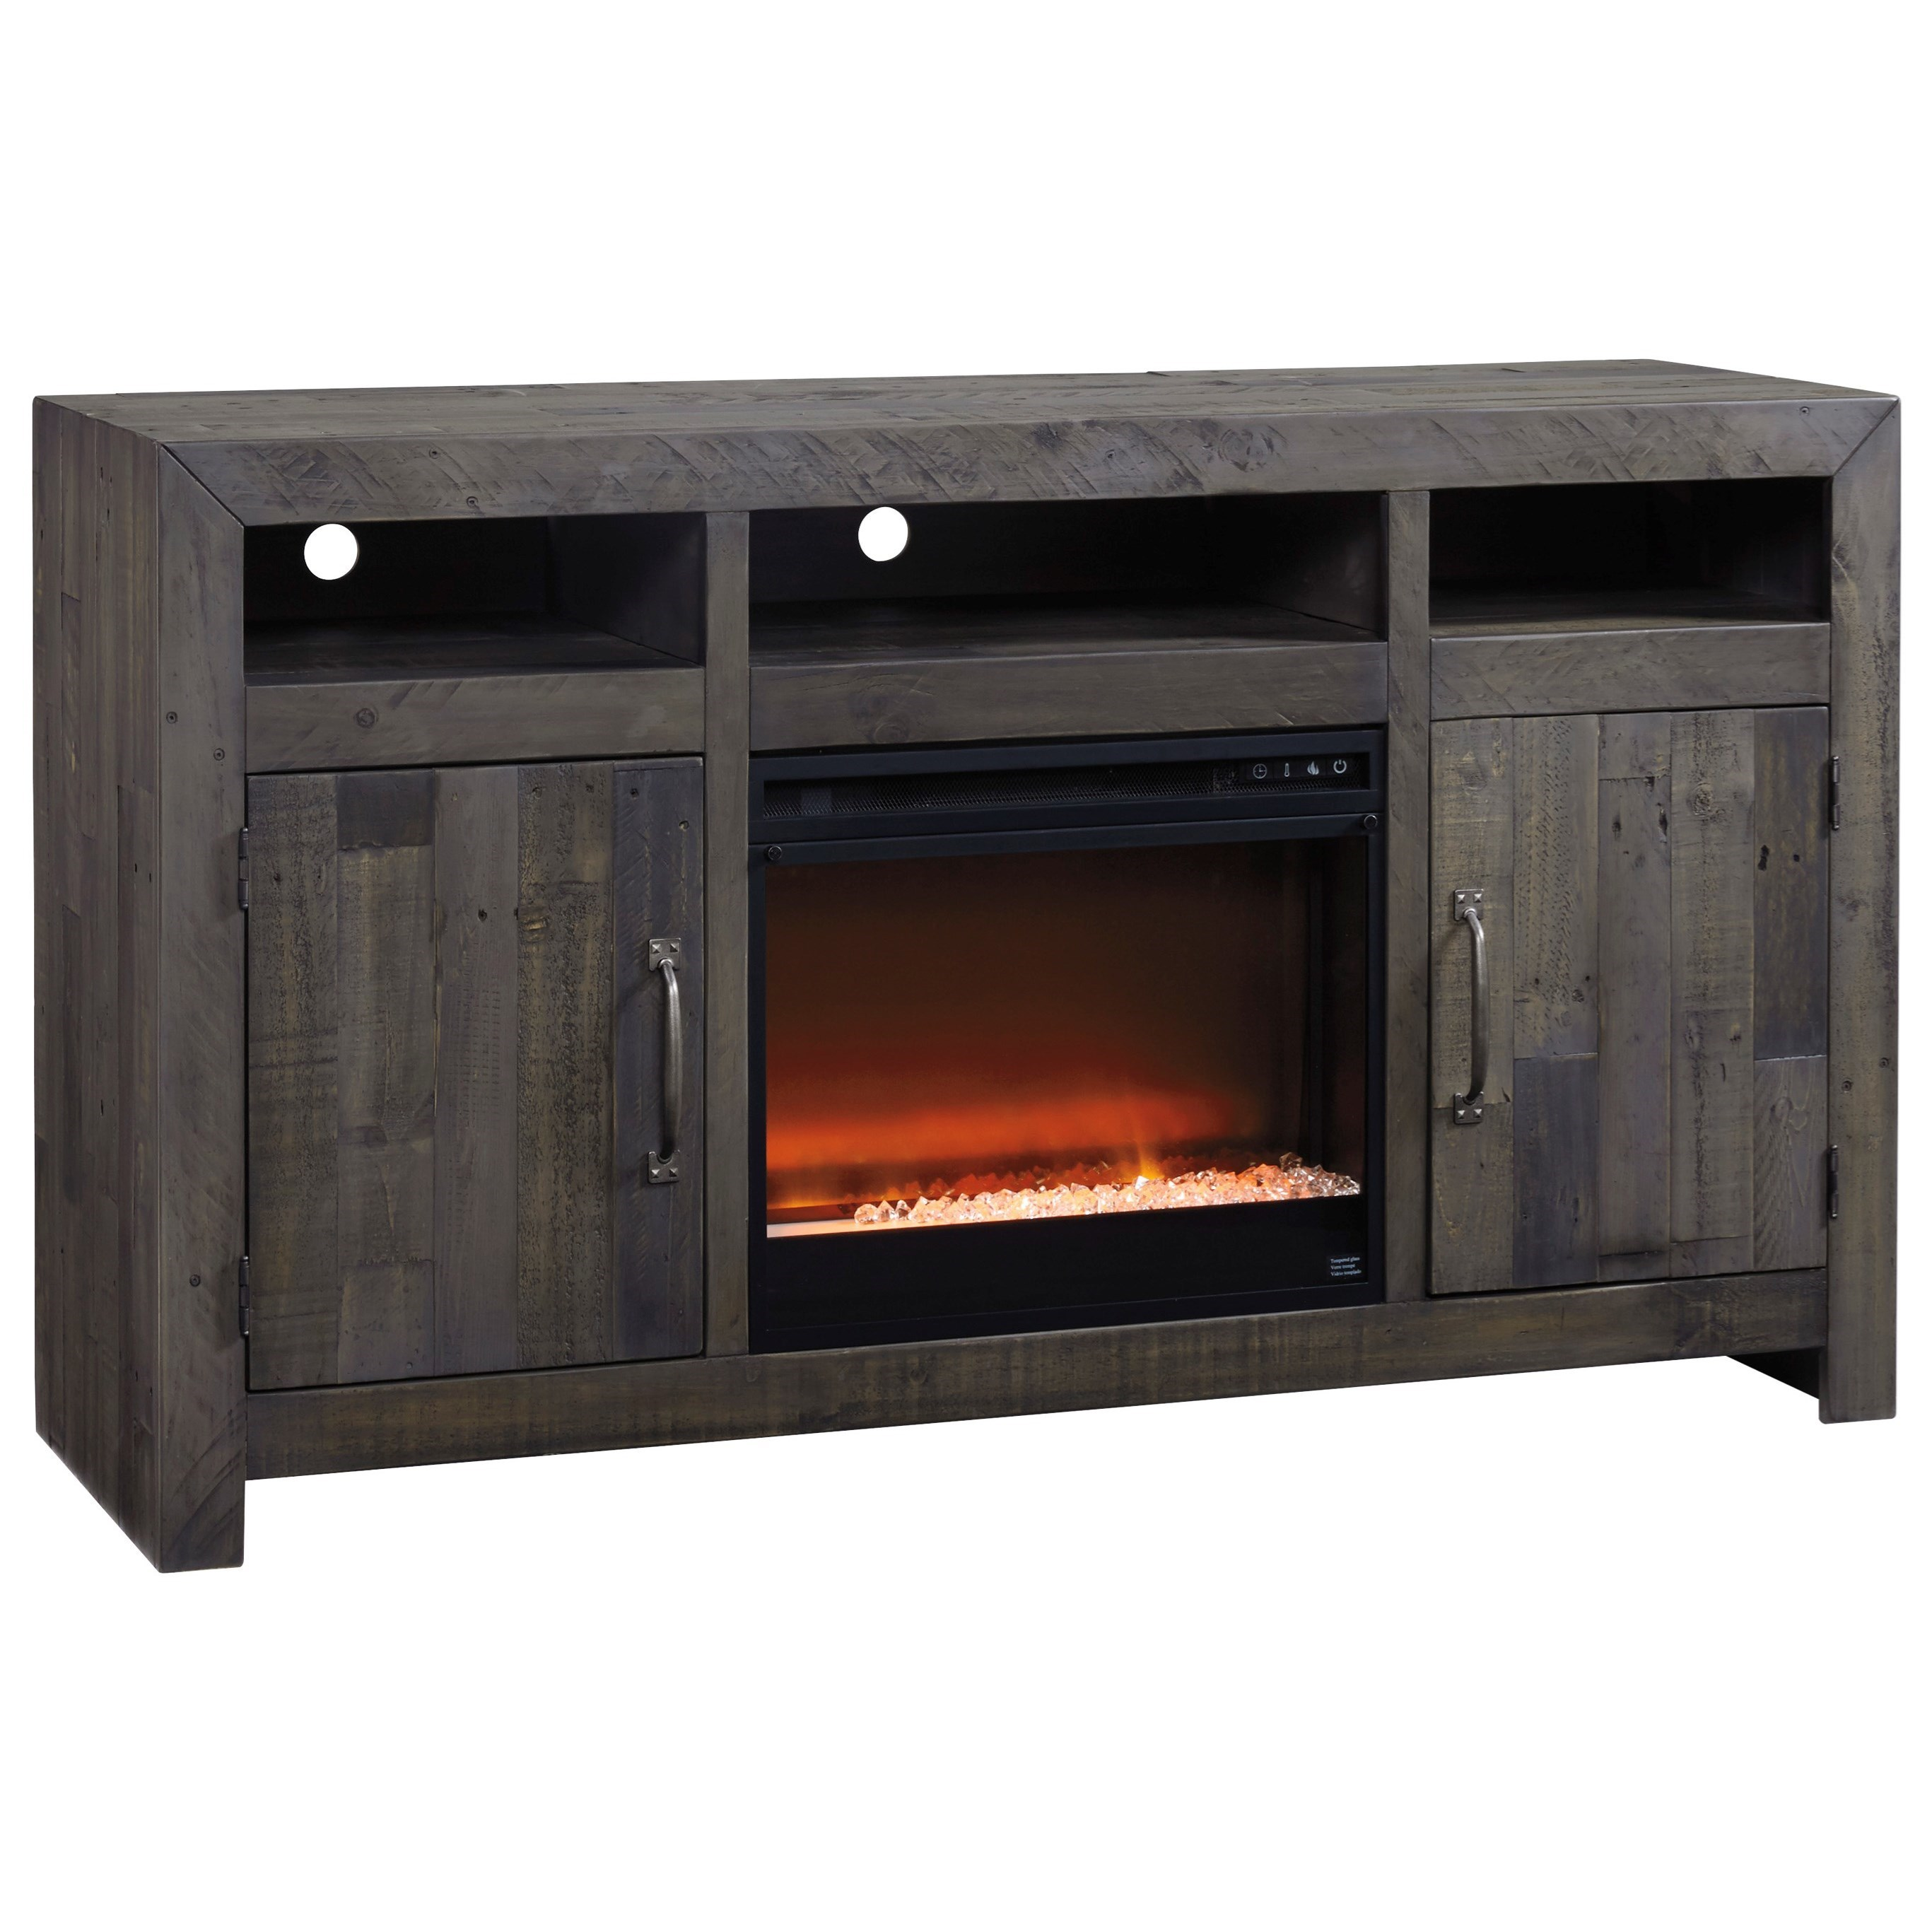 Signature design by ashley mayflyn reclaimed solid wood for Contemporary wood fireplace insert